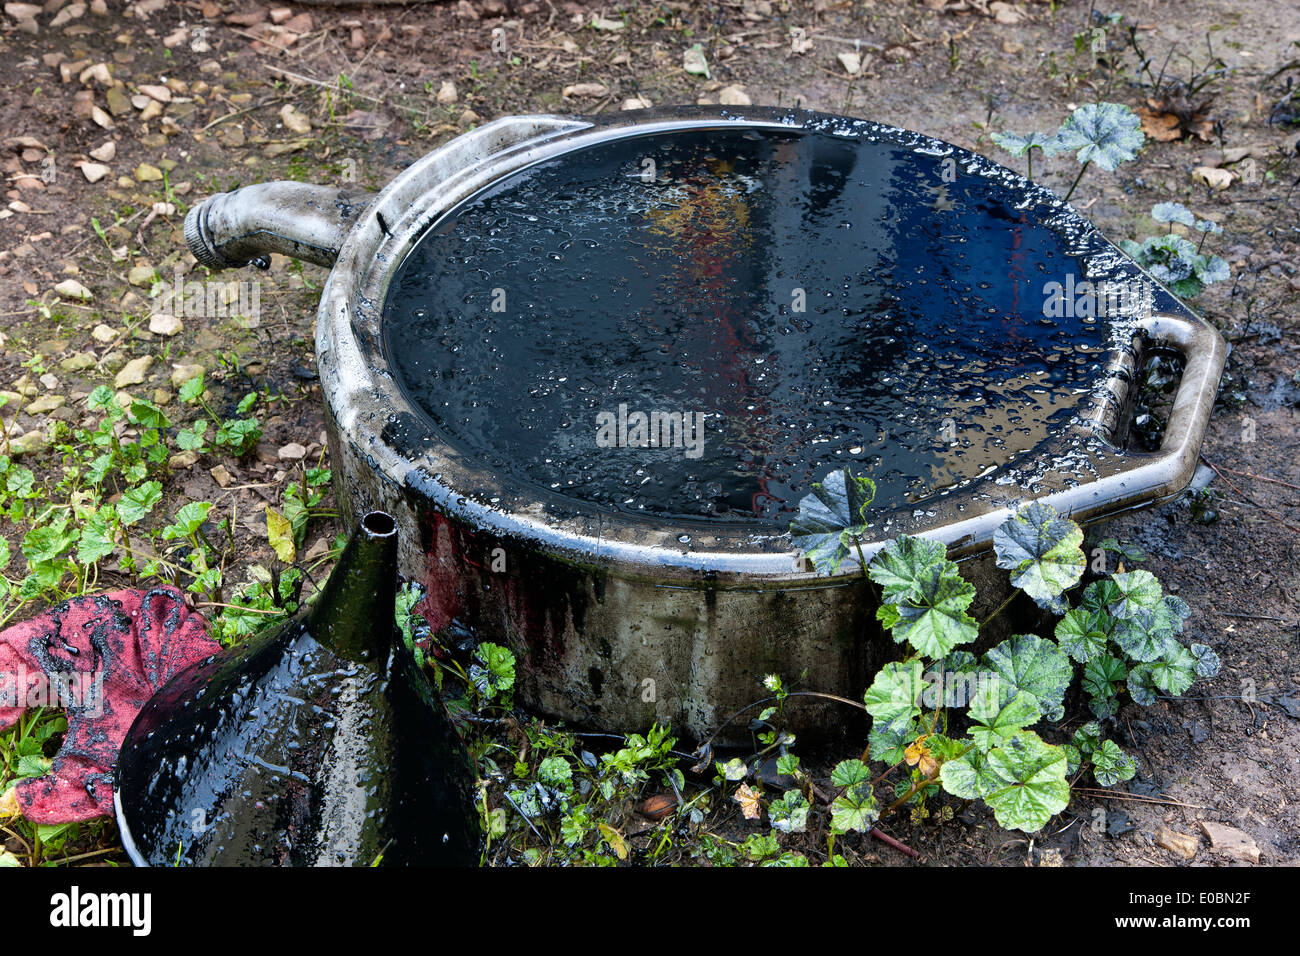 Oil drain pan overflowing, containing dirty engine oil. - Stock Image